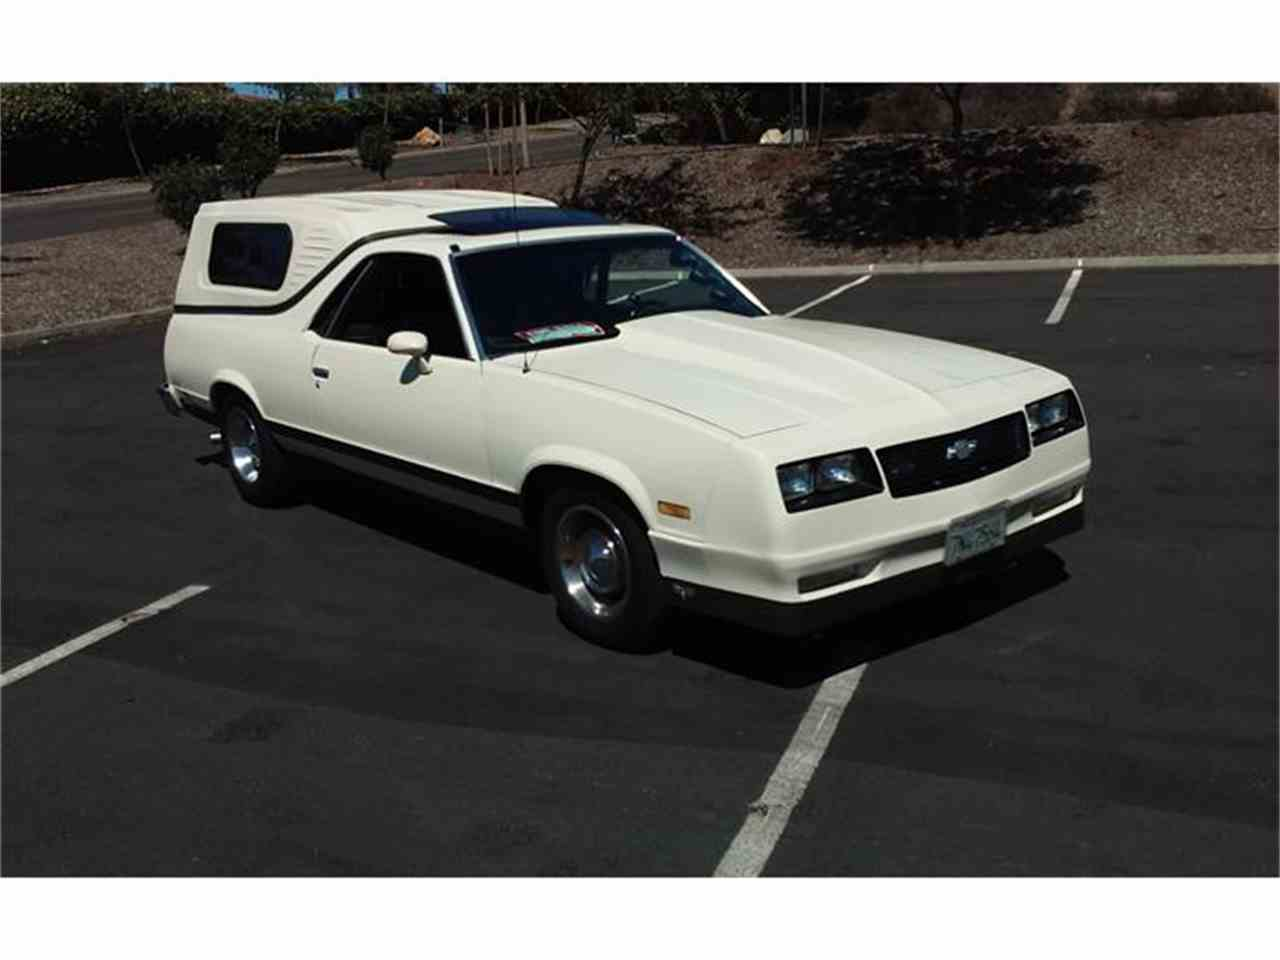 Large Picture of 1983 Chevrolet El Camino located in California - $8,700.00 Offered by a Private Seller - J05V